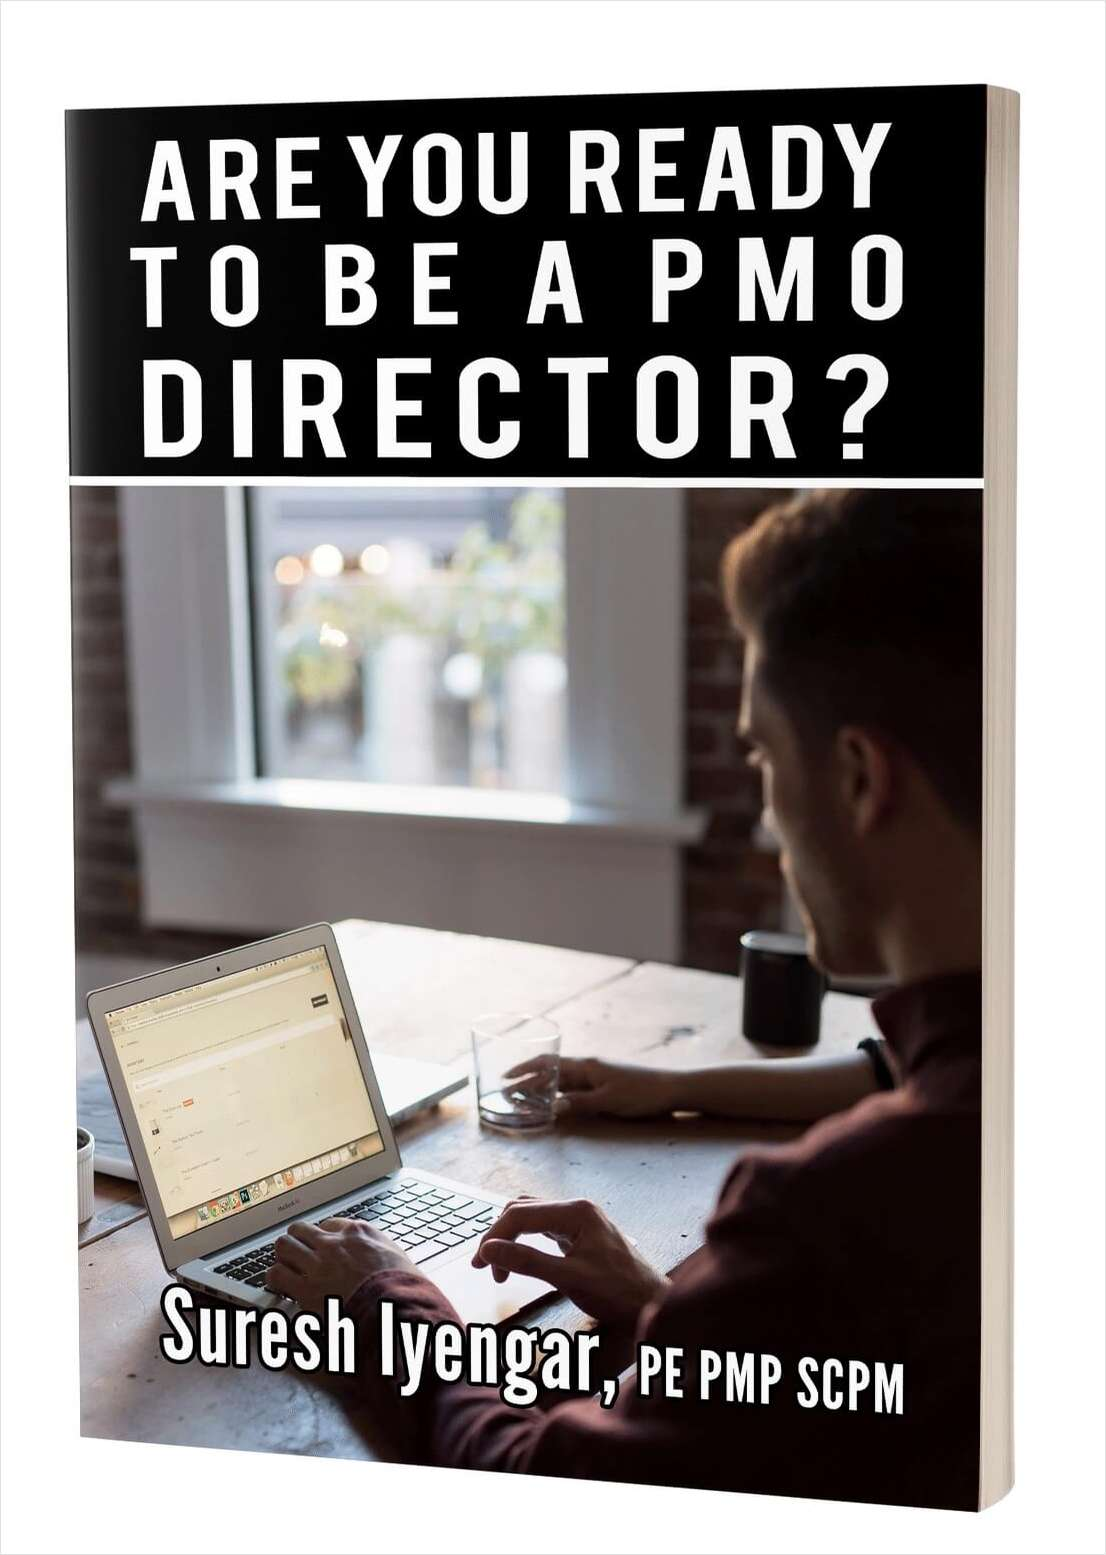 Are You Ready to be a PMO Director?